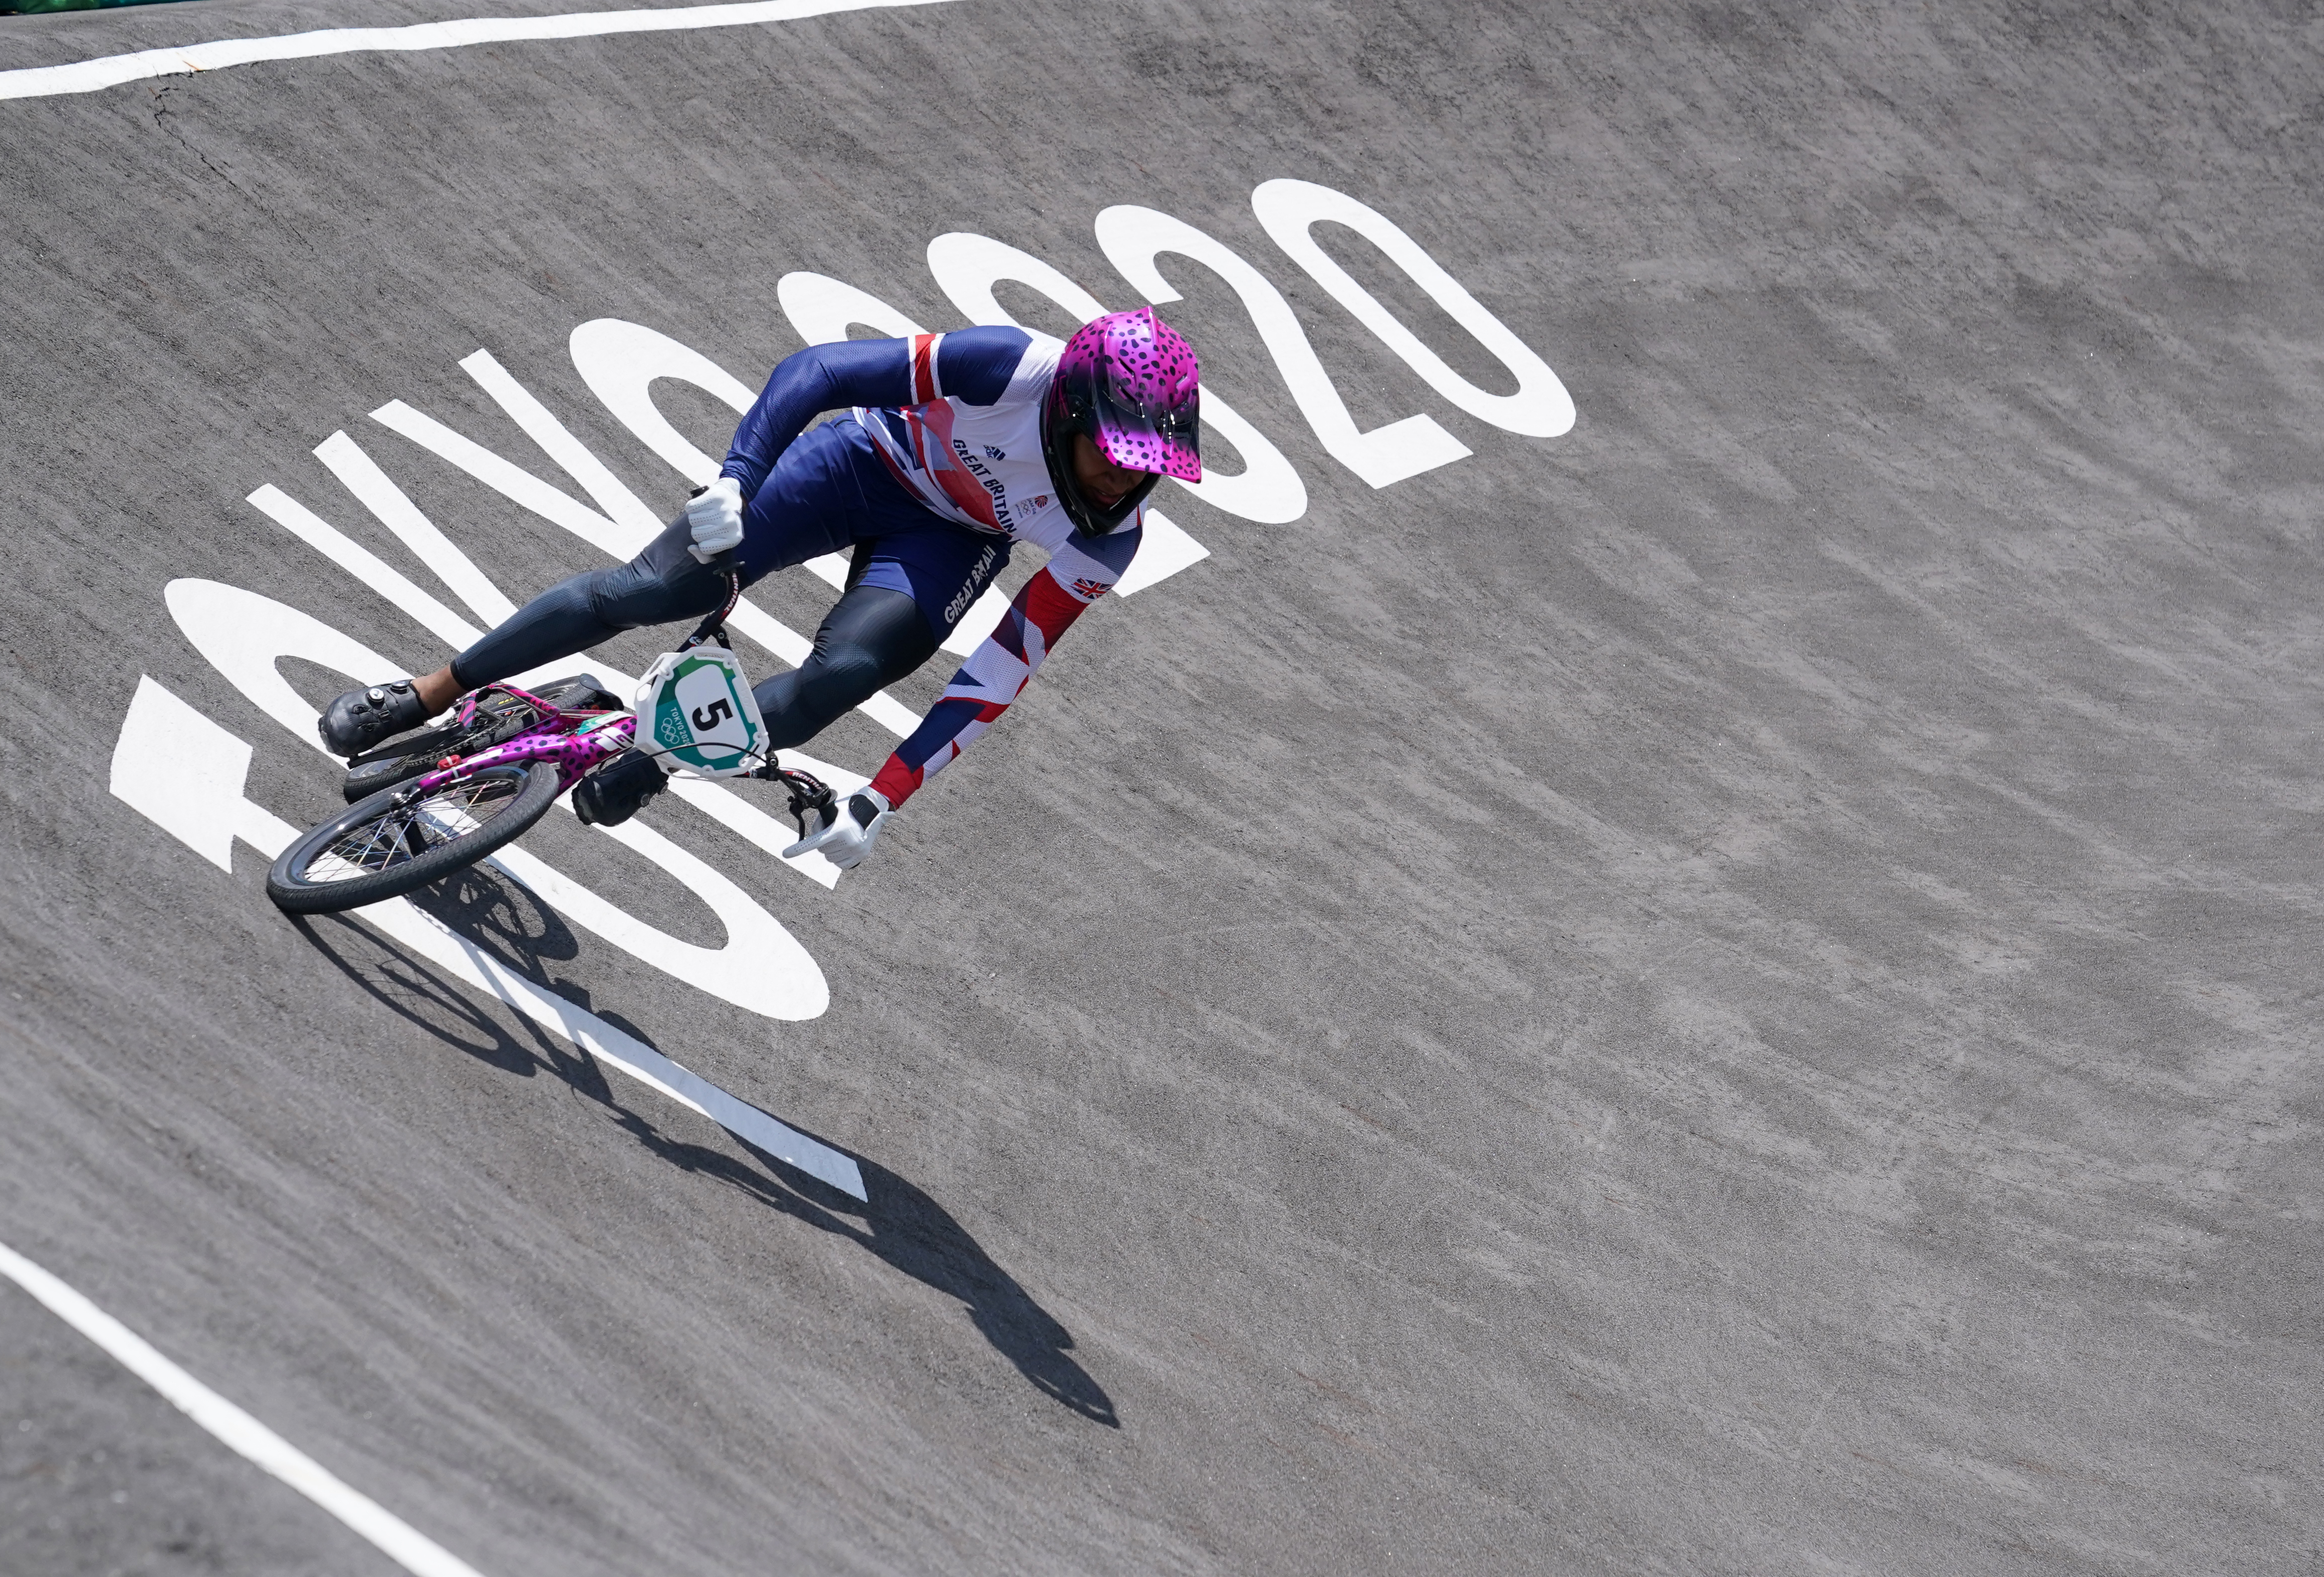 Kye Whyte at the Tokyo Olympic Games